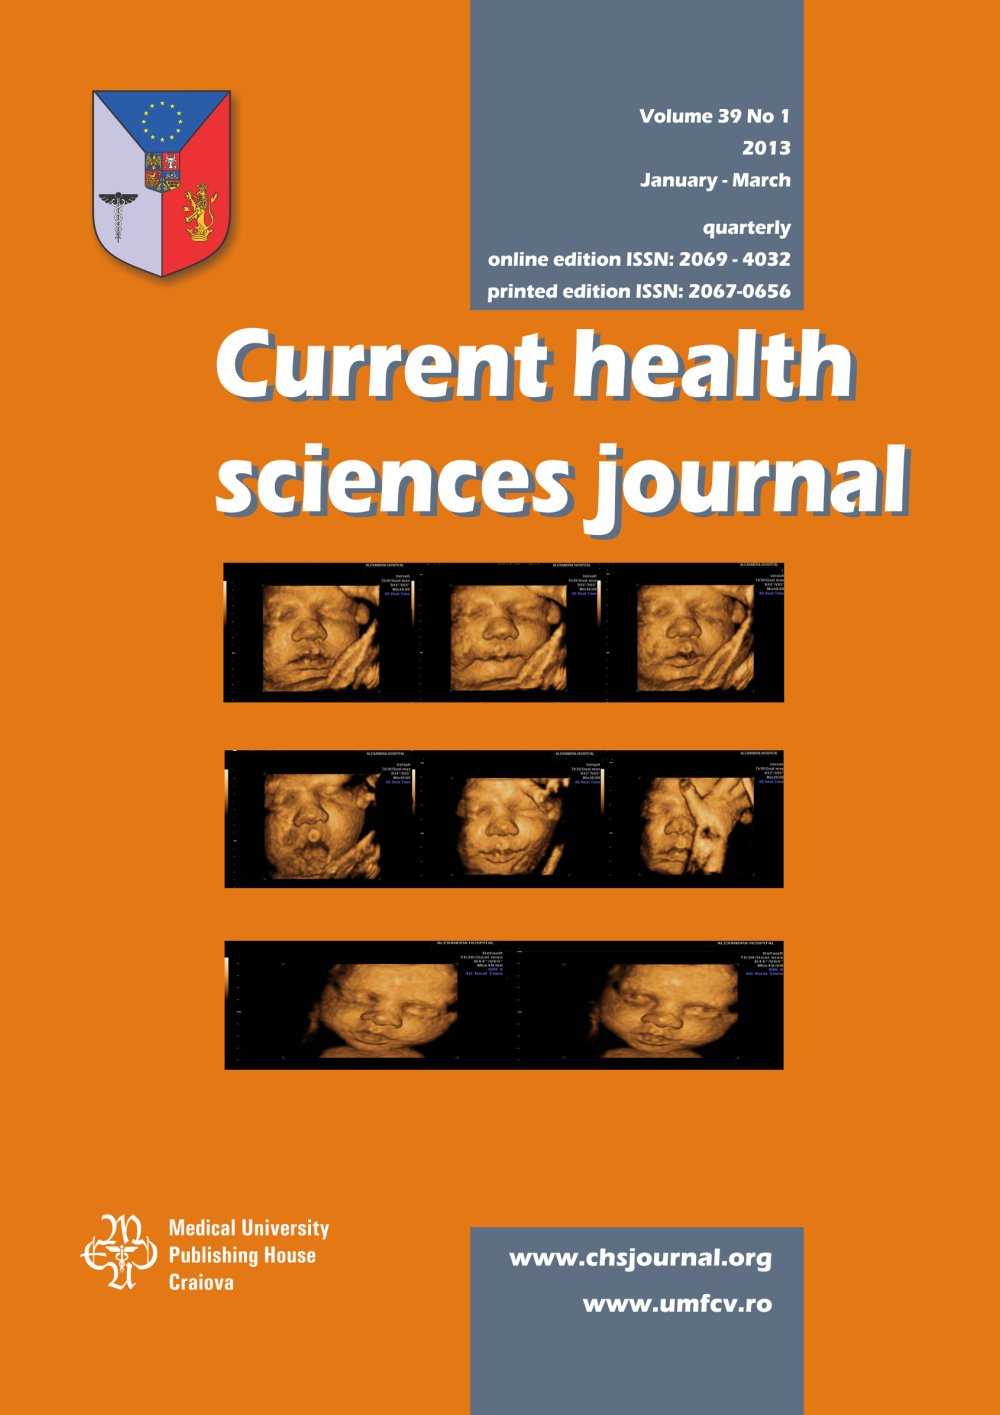 Current Health Sciences Journal, vol. 39 no. 1, 2013